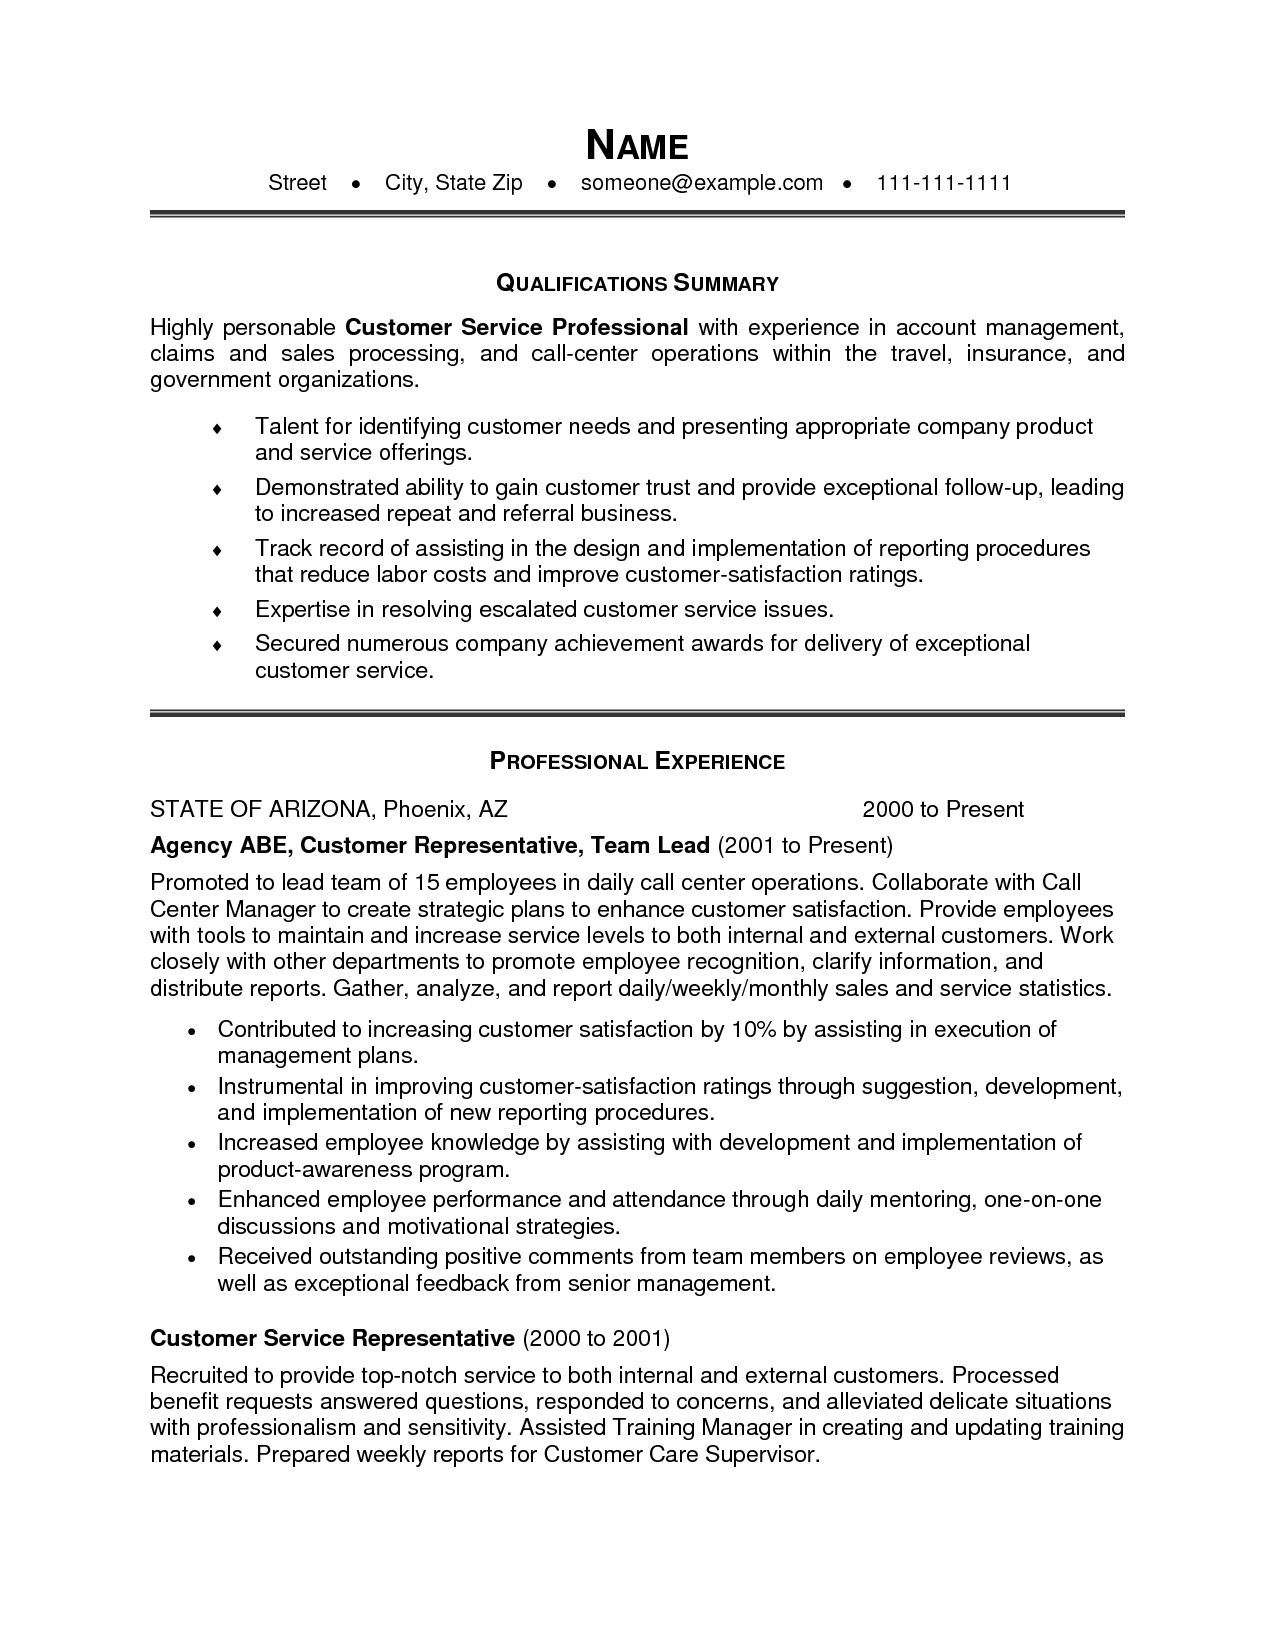 Resume Qualifications Summary Customer Service